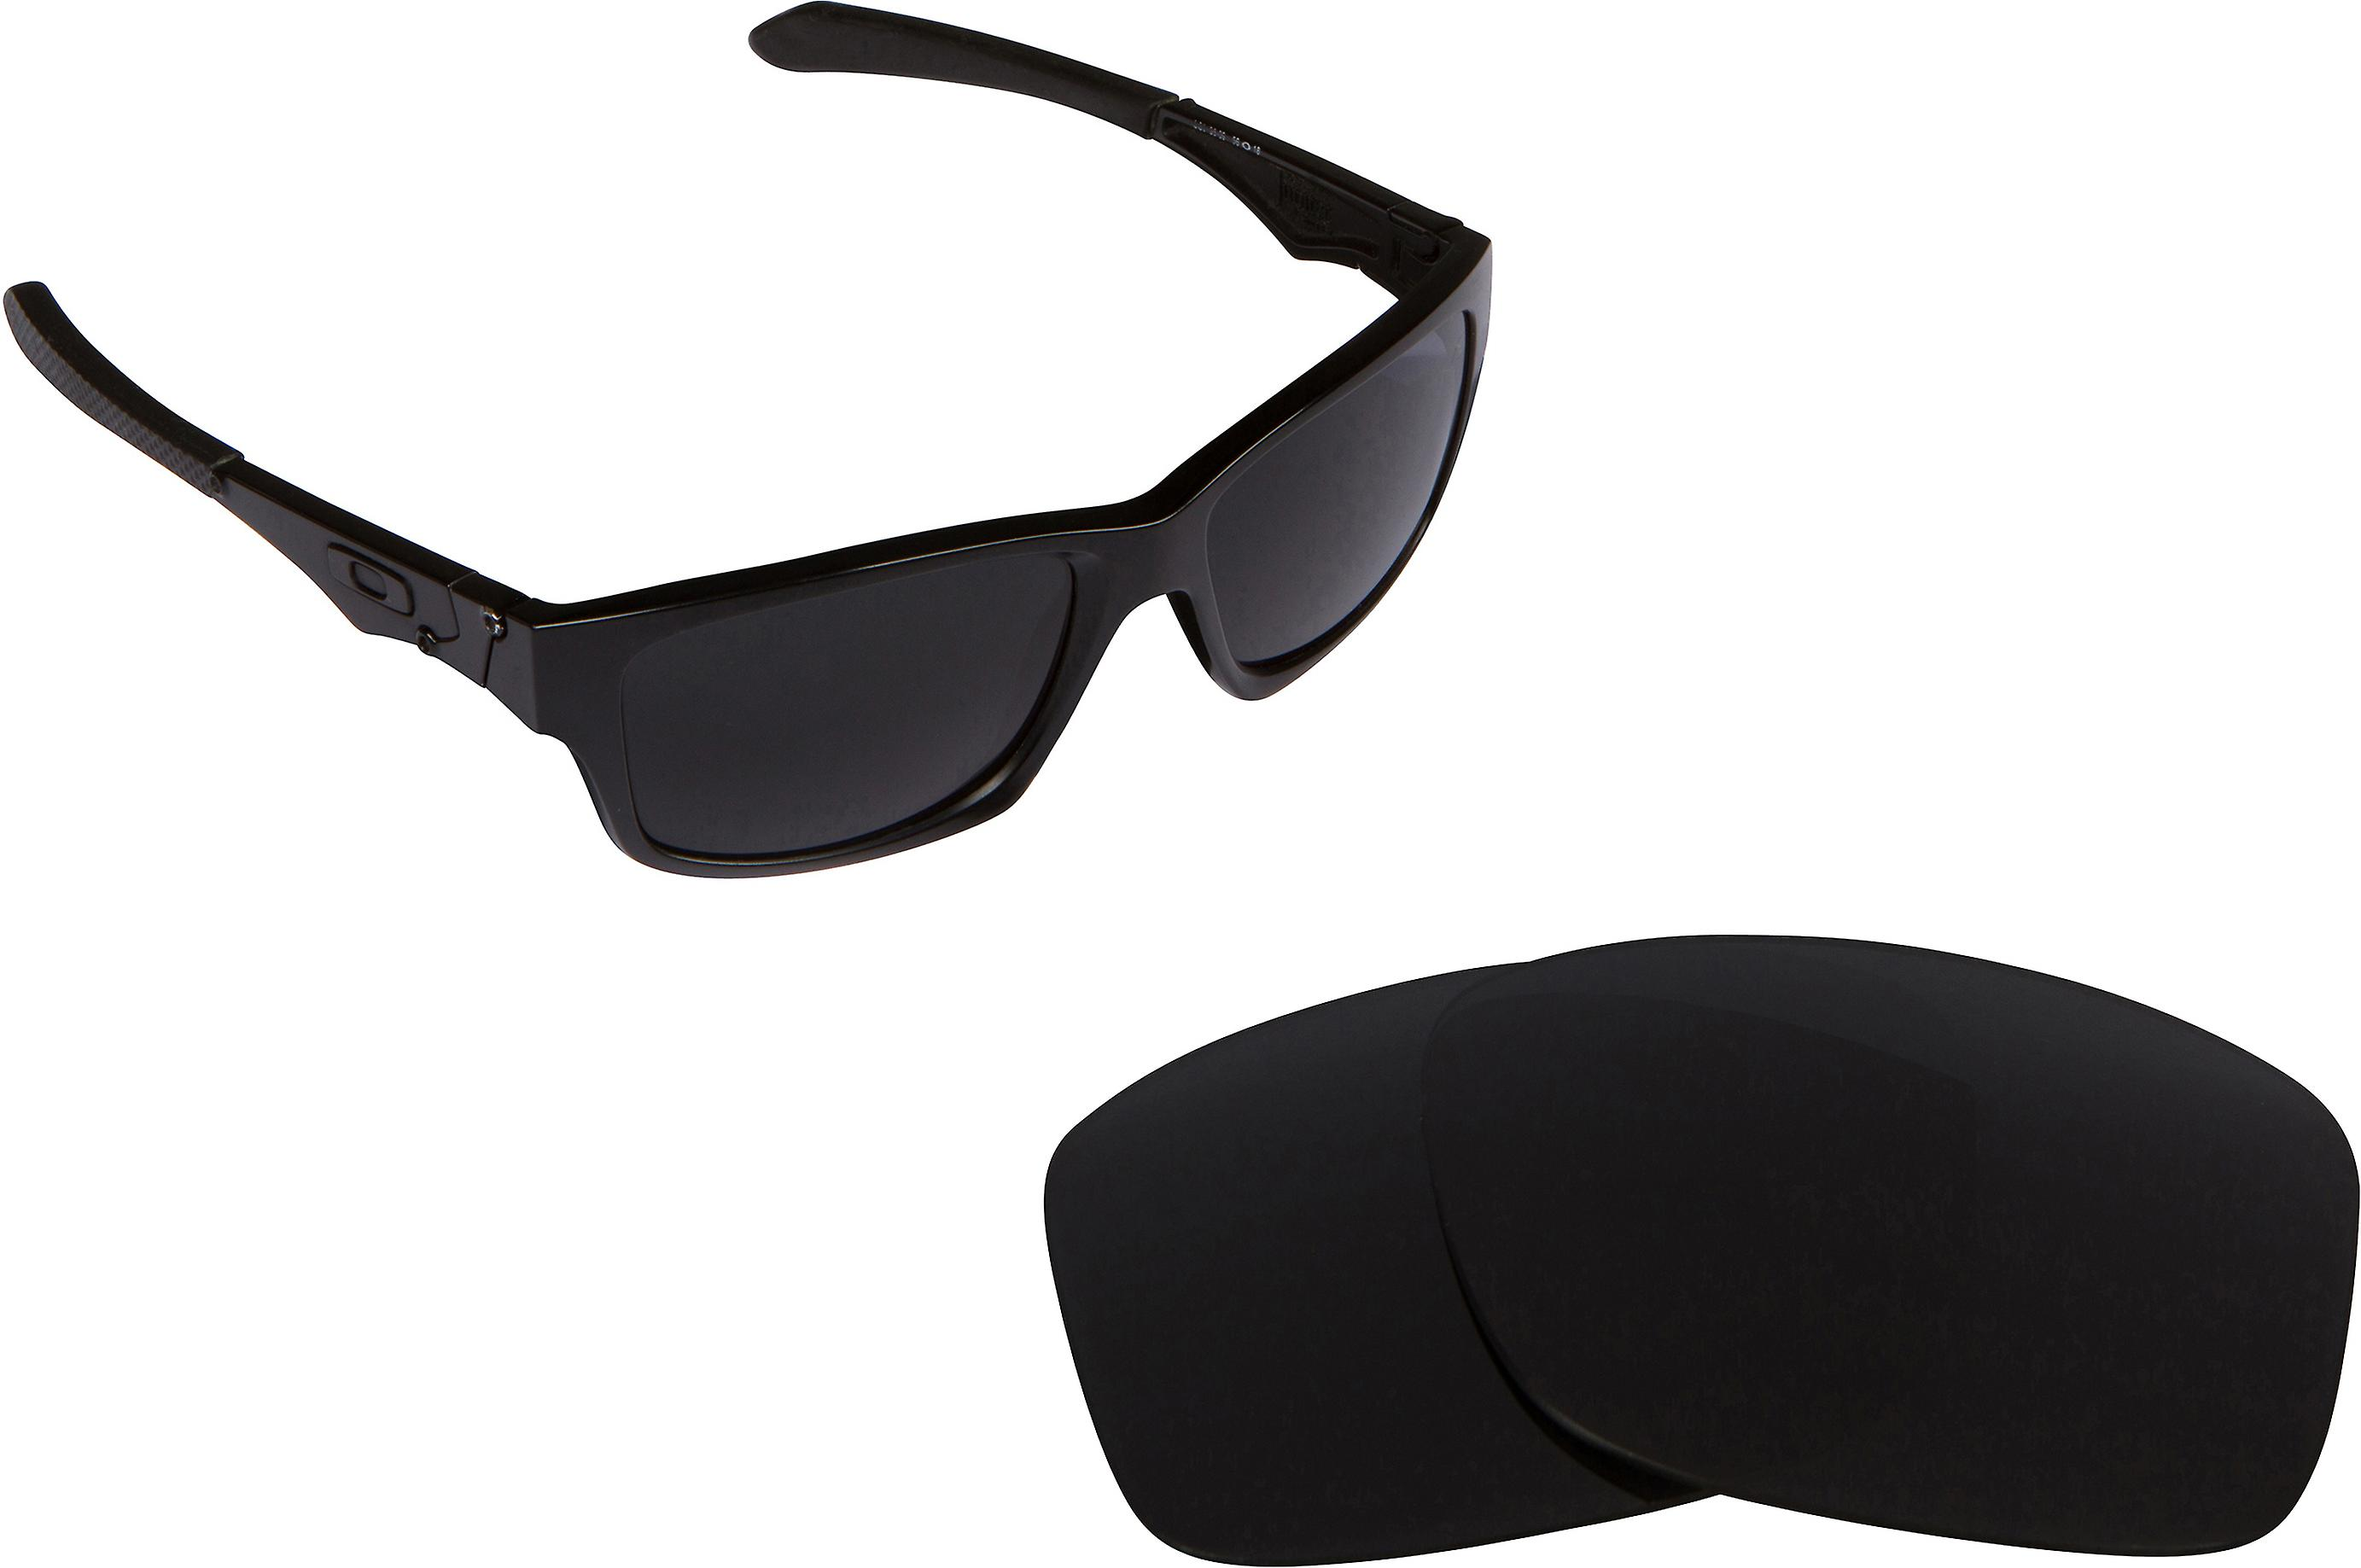 643dcbfeb1 JUPITER SQUARED Replacement Lenses Classic Grey by SEEK fits OAKLEY  Sunglasses